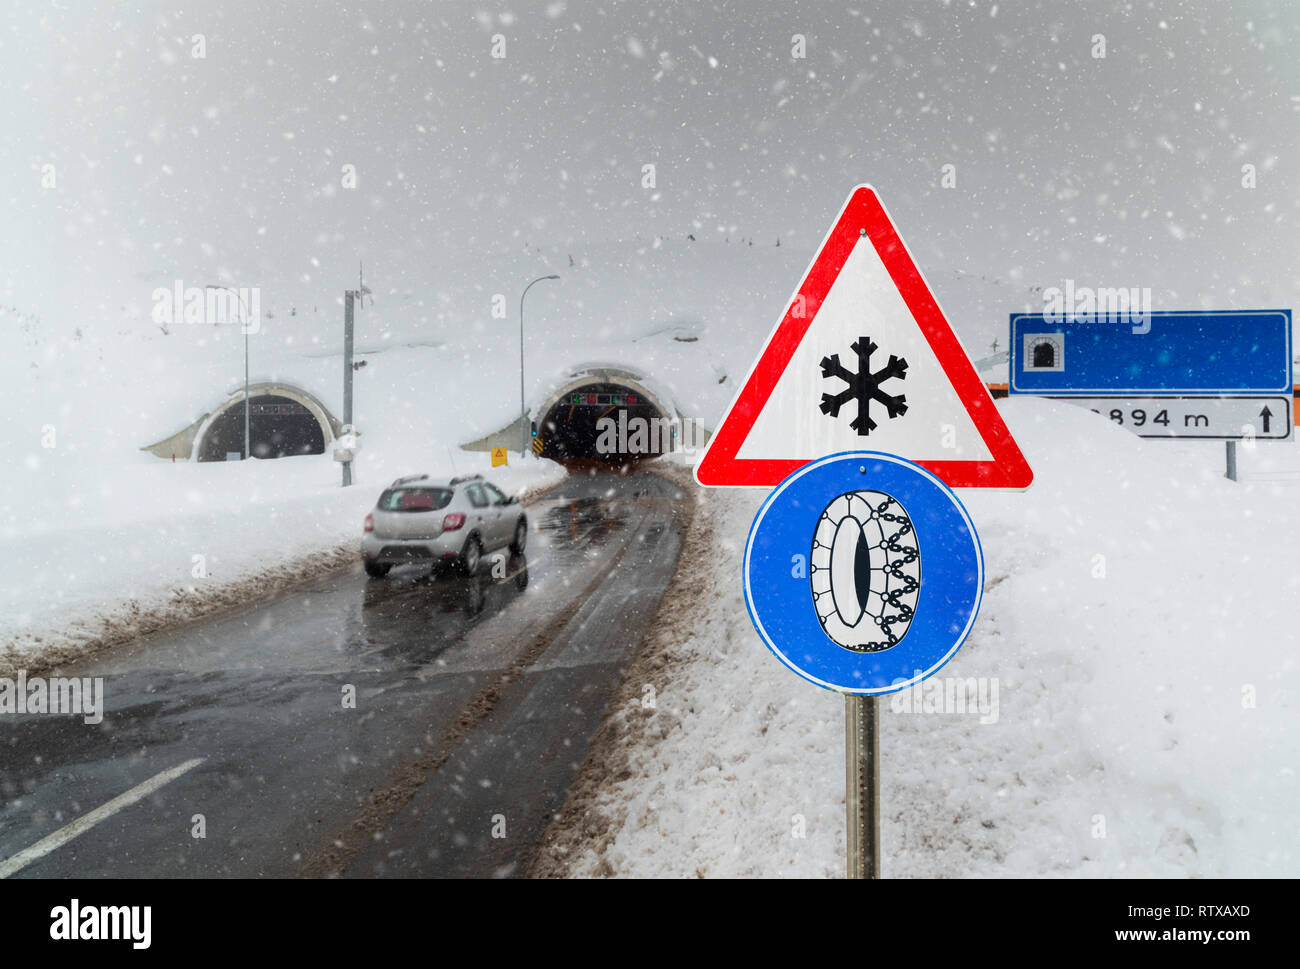 winter driving, icy and slippery roads - Stock Image